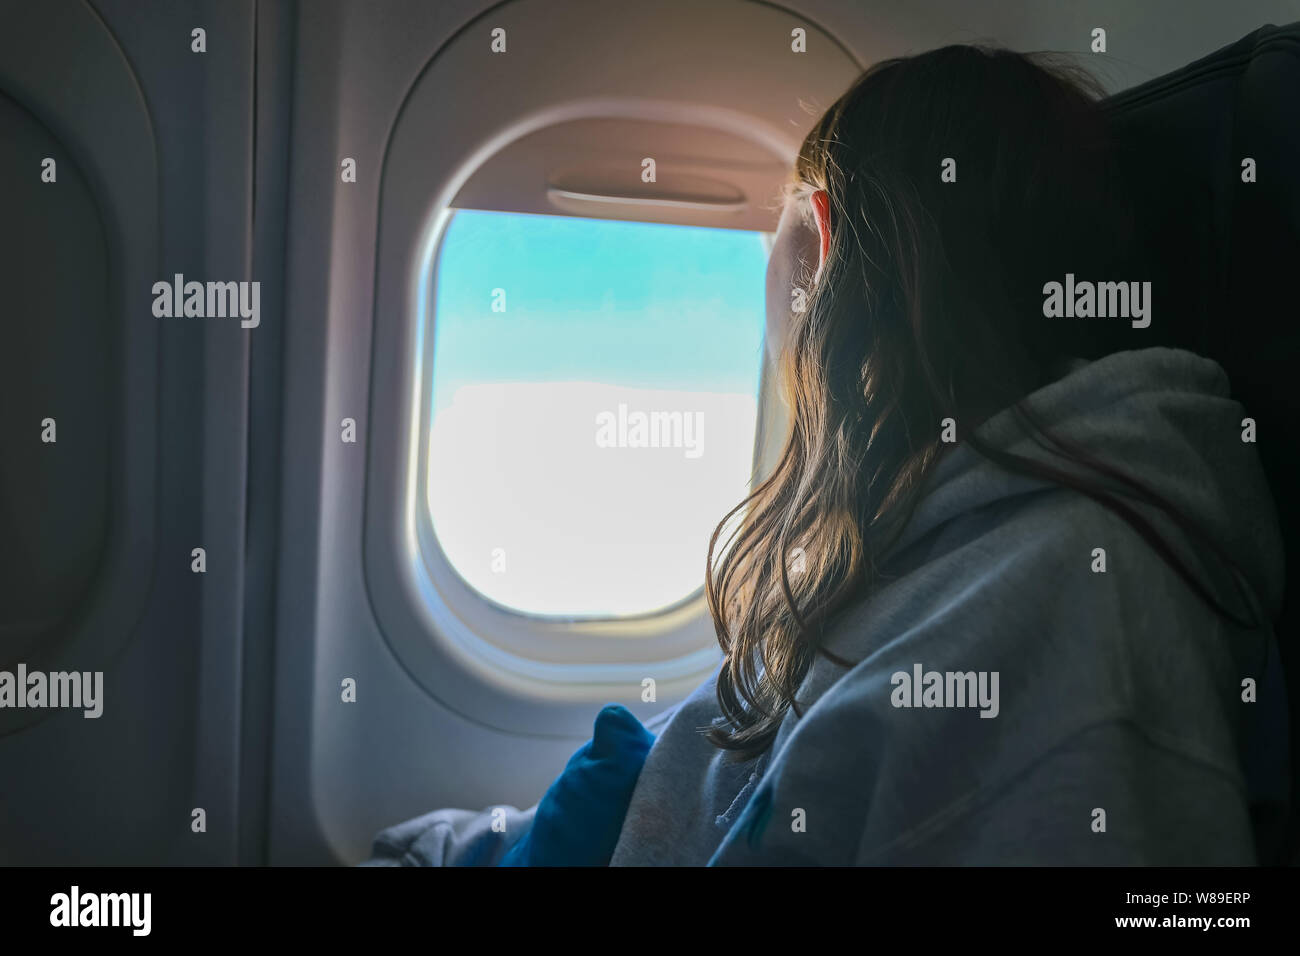 Girl looking out airplane window in flight while traveling Stock Photo